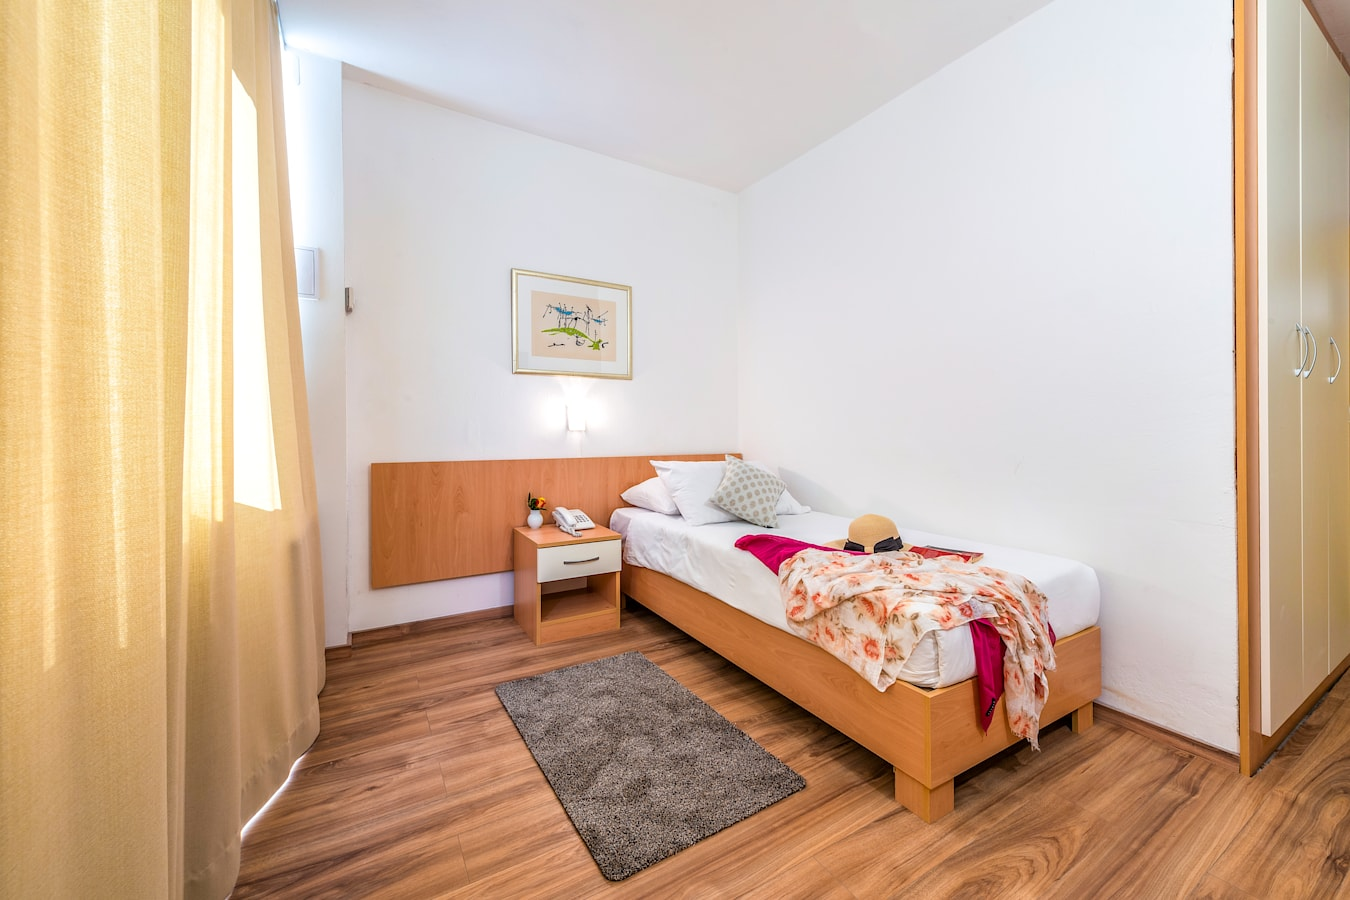 adriatic-hotel-dubrovnik-single-room.jpg